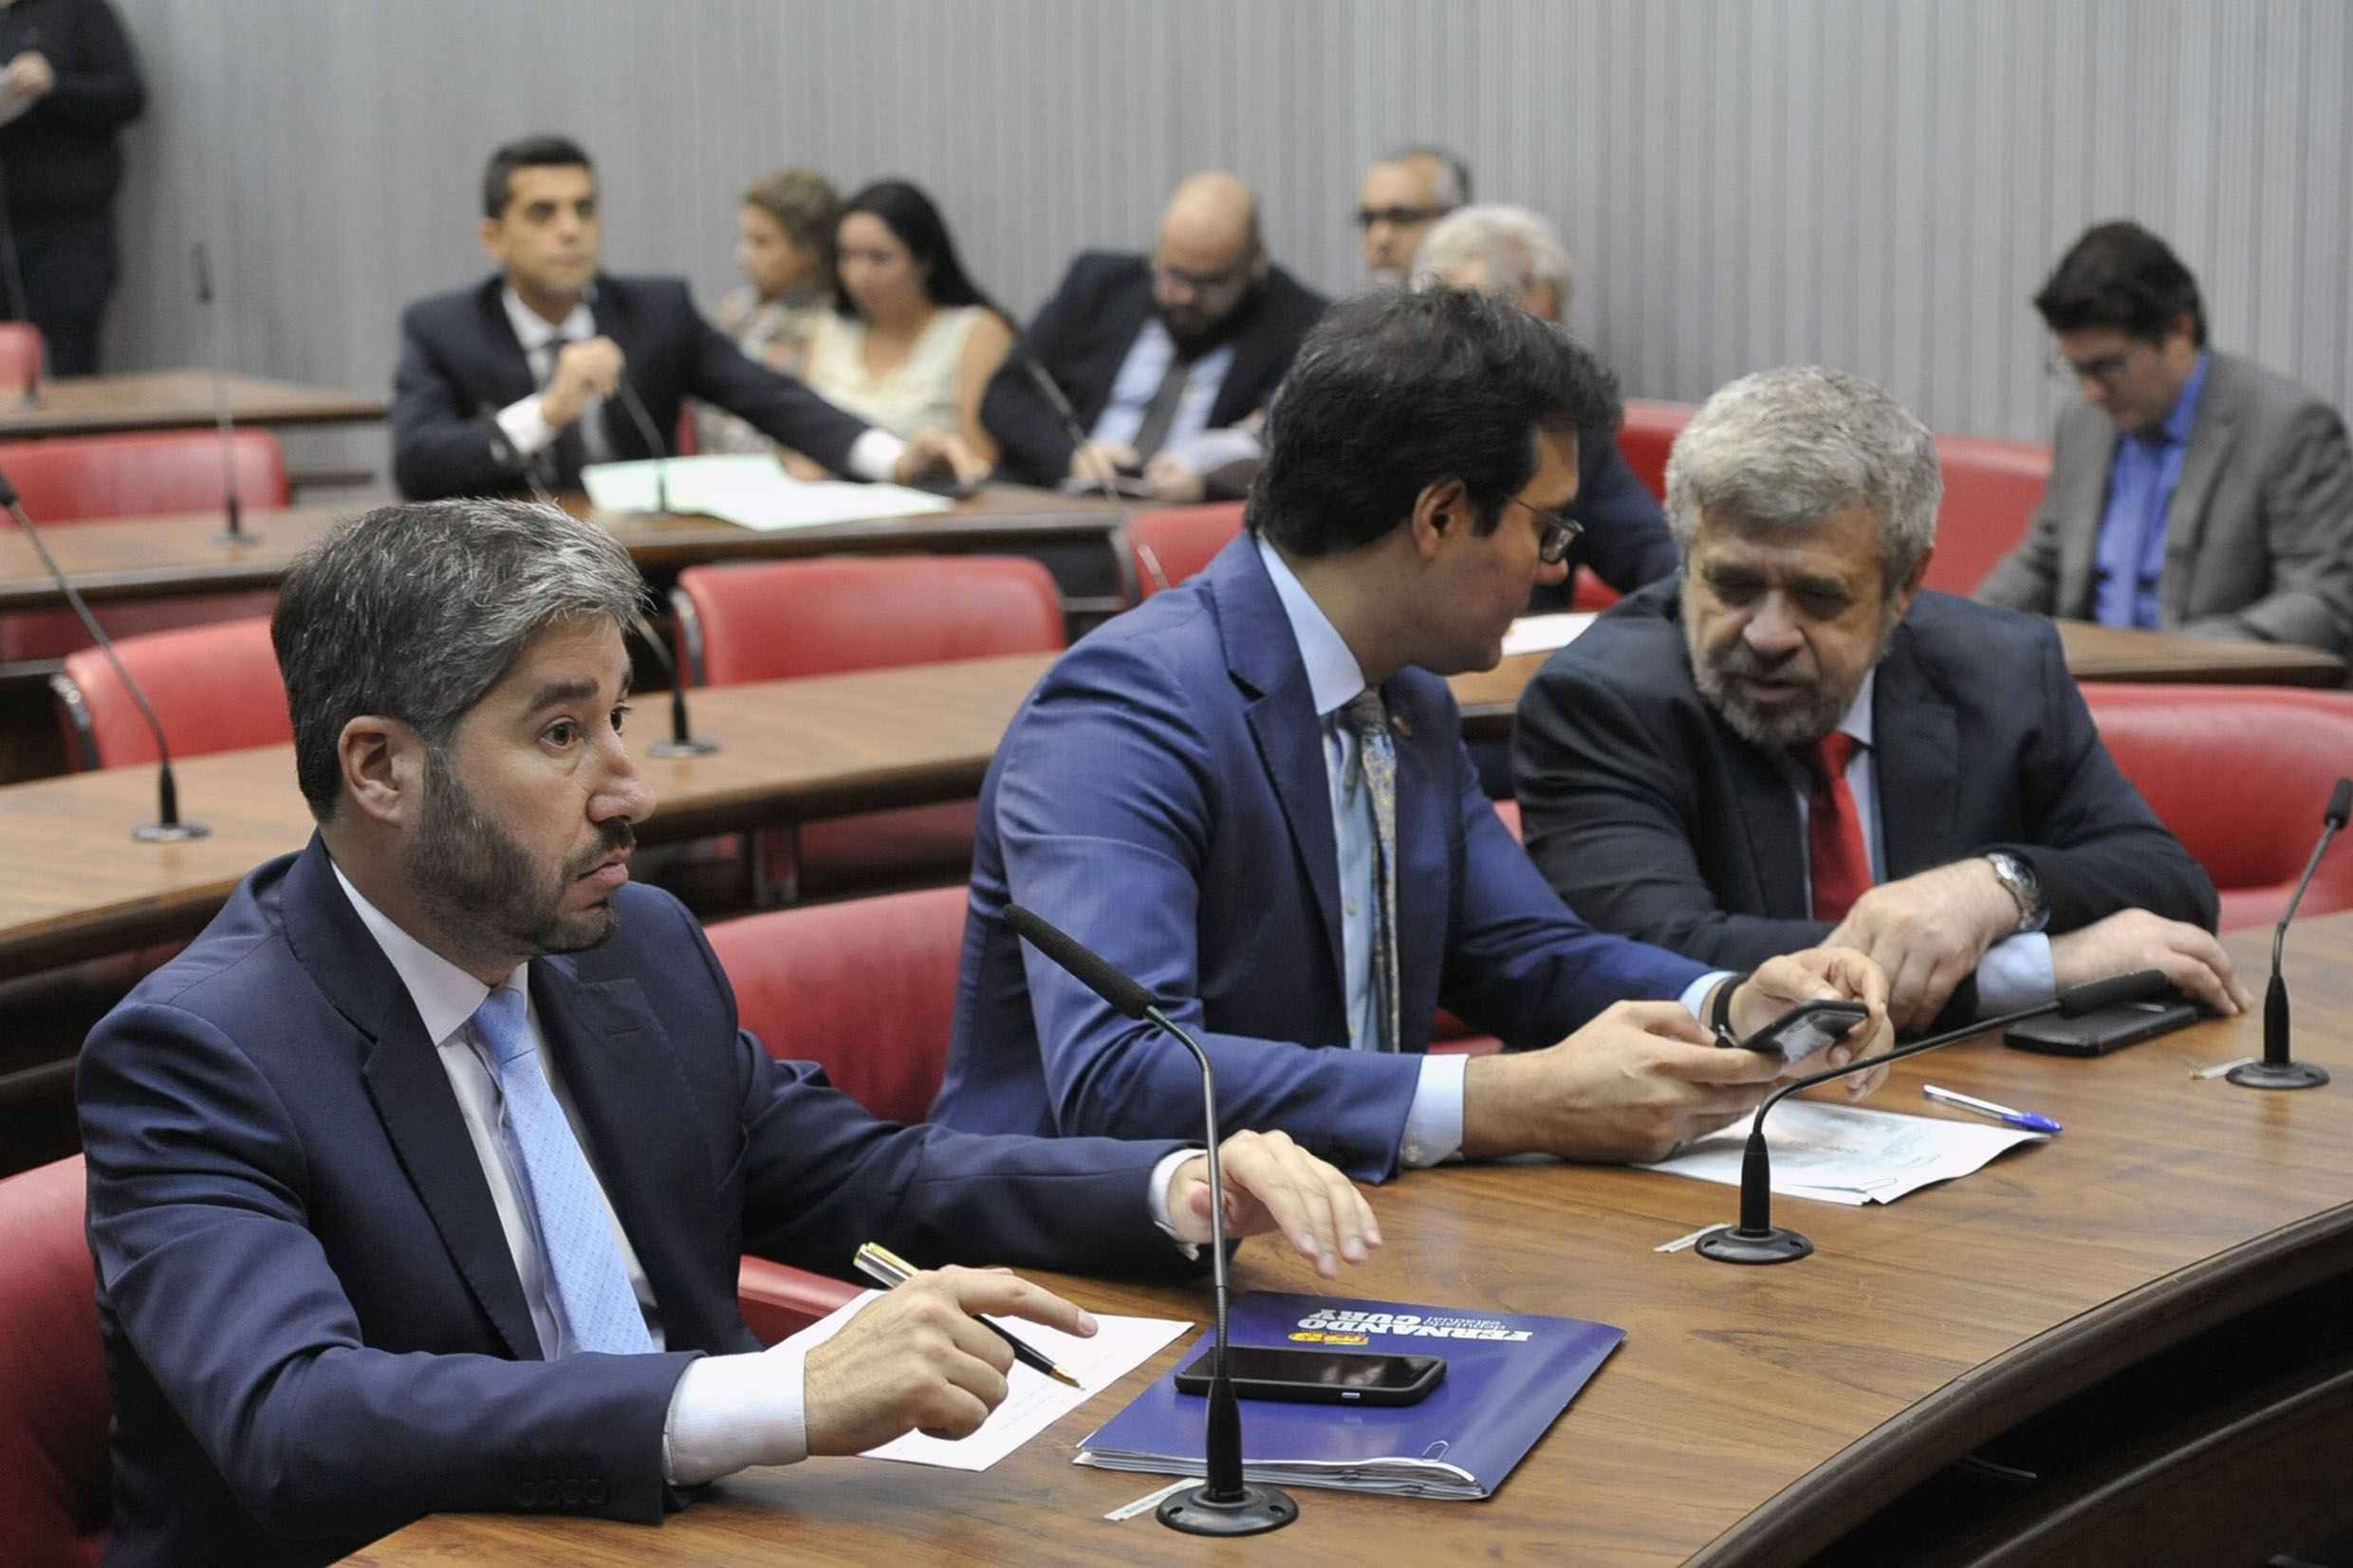 Parlamentares na comissão<a style='float:right' href='https://www3.al.sp.gov.br/repositorio/noticia/N-04-2019/fg233429.jpg' target=_blank><img src='/_img/material-file-download-white.png' width='14px' alt='Clique para baixar a imagem'></a>